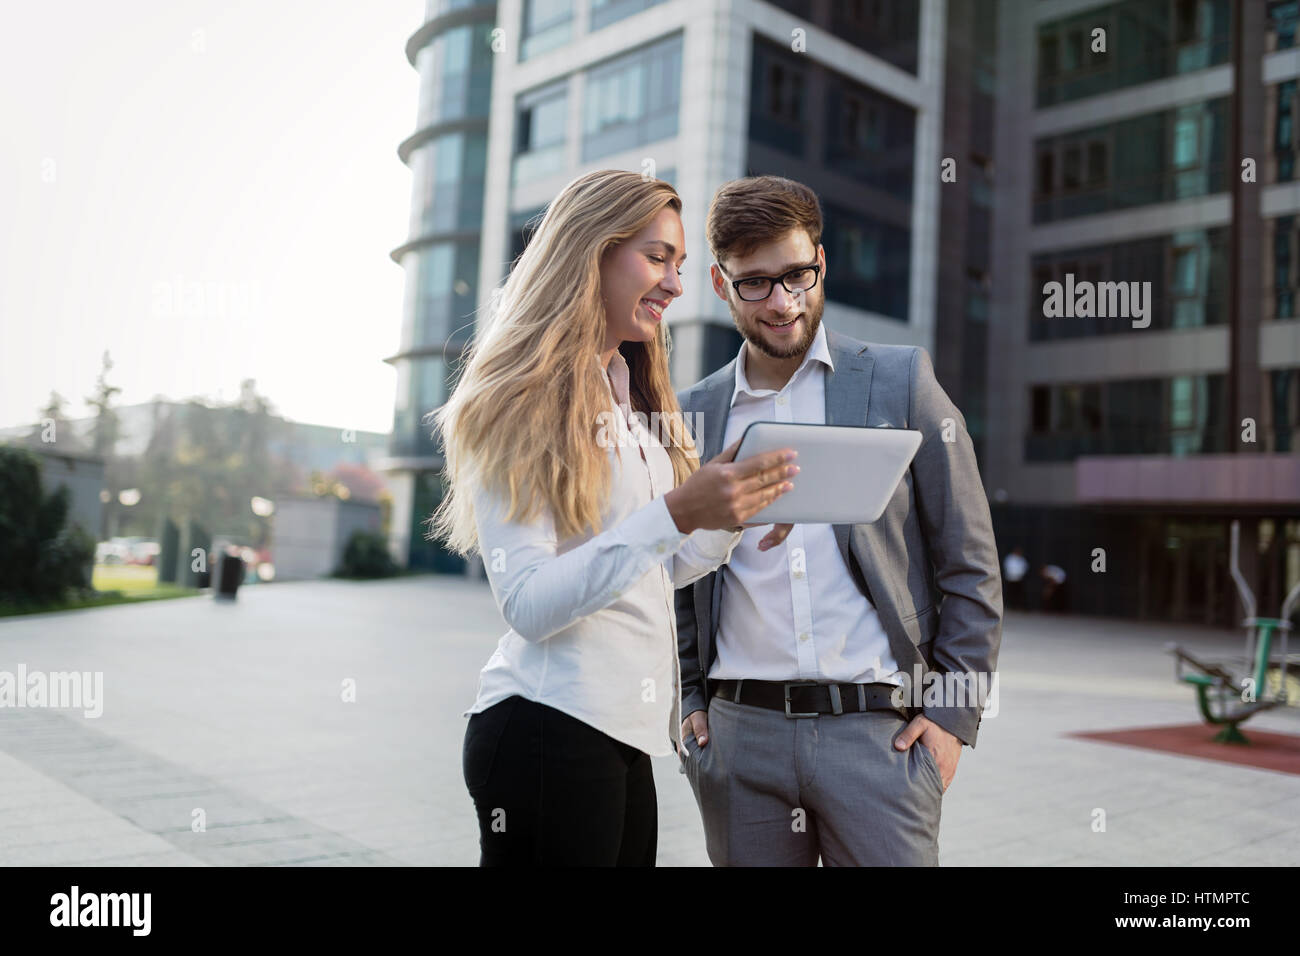 Business people walking outdoors and using phones tablets Stock Photo